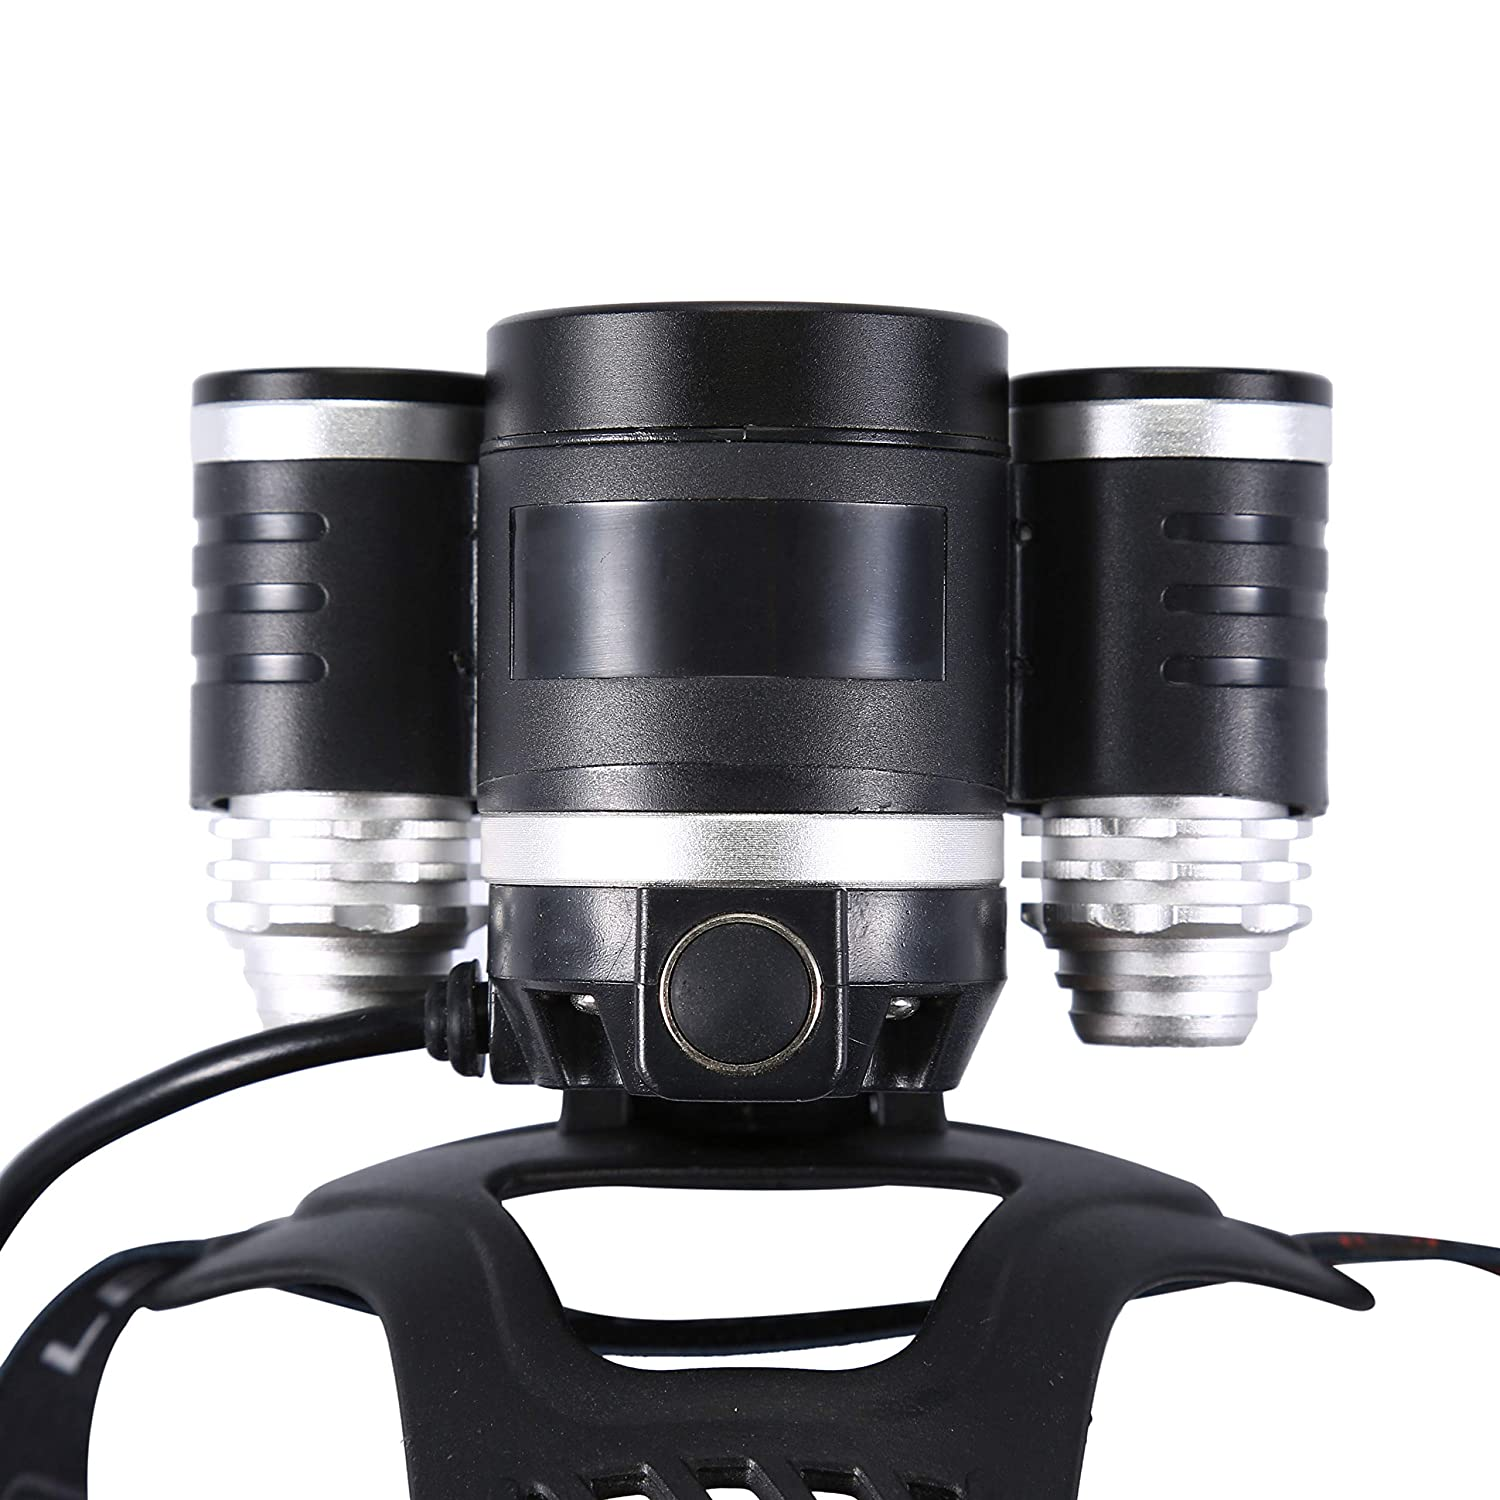 Boruit Head Torch LED Waterproof Head Light 6000lm 4 Modes 3*XM-L2 T6 Headlamps Rechargeable Headlight Super Bright Adjustable Head Lights for Running Fishing Hiking Camping